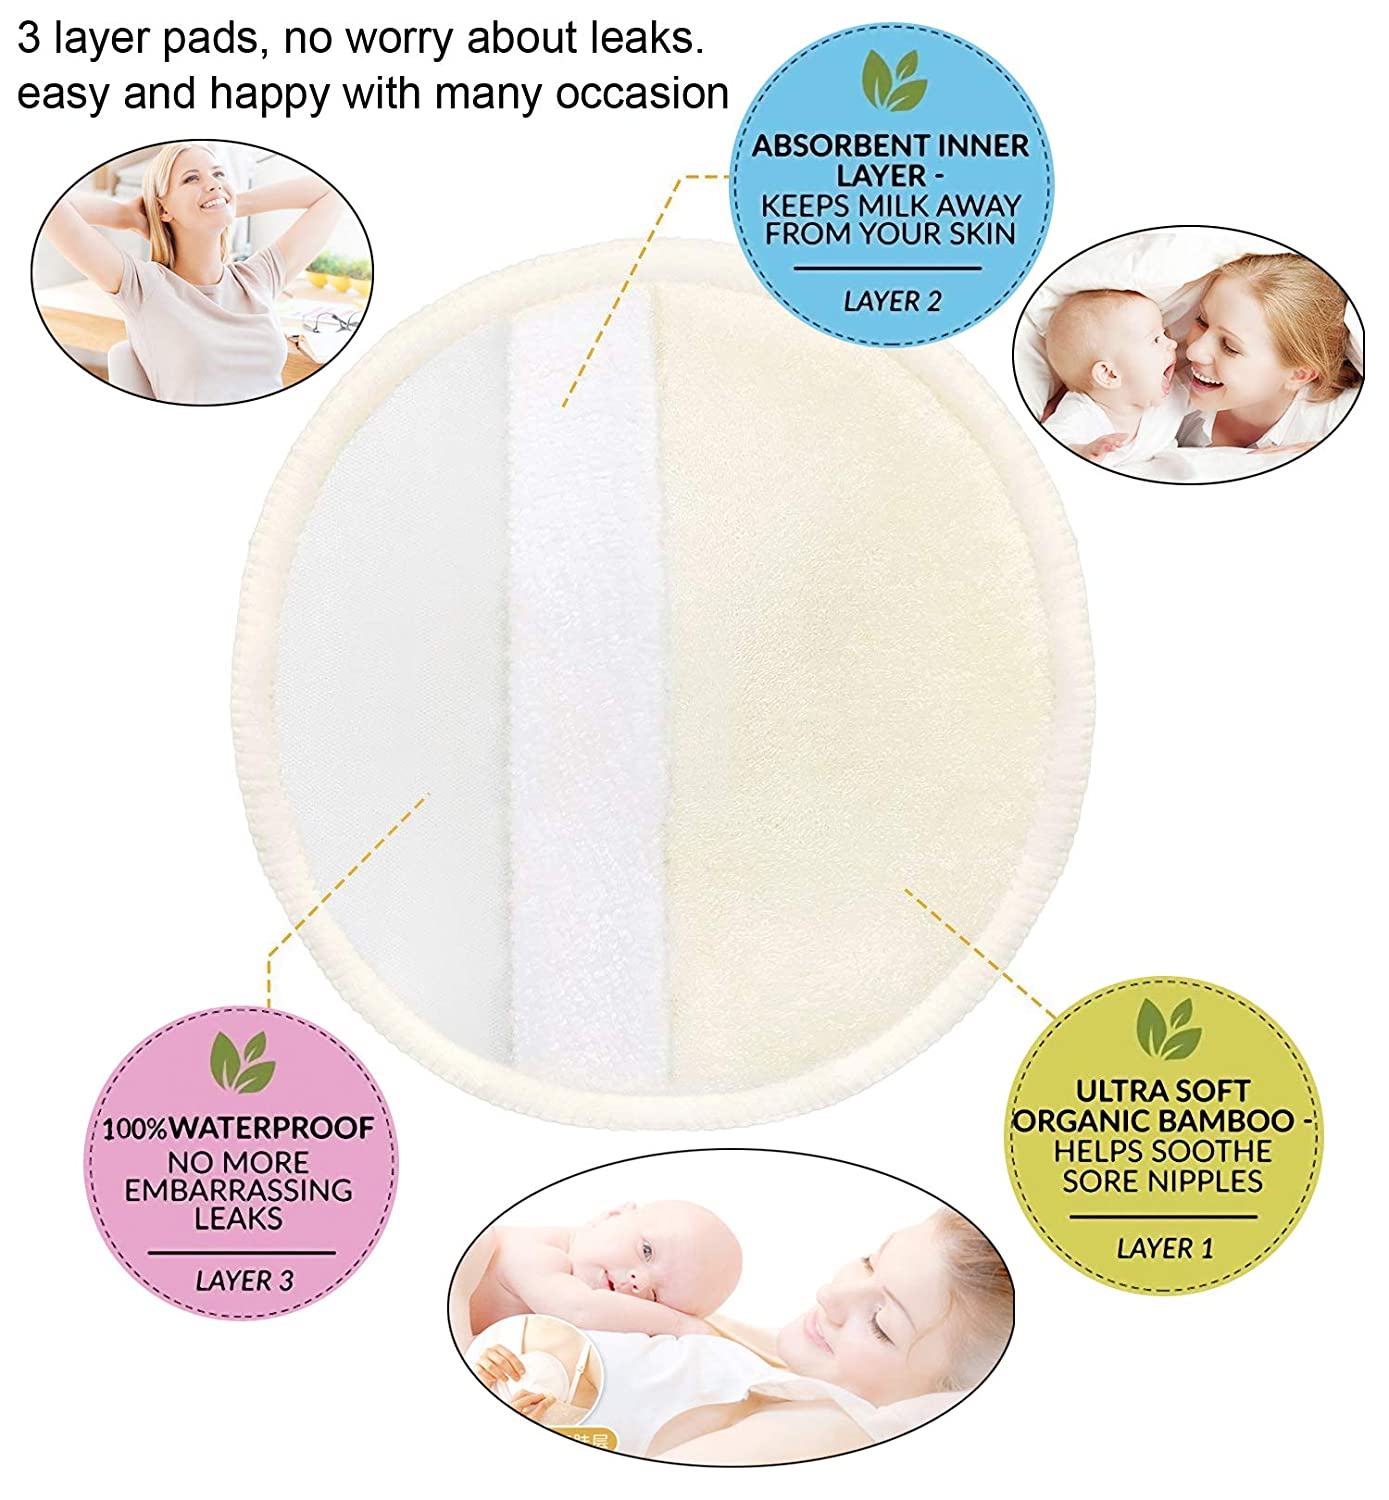 4.7 inch Reusable Washable Breastfeeding Nipple Pad for Maternity with Laundry Bag for Breastfeeding Moms 10 Pack Organic Bamboo Nursing Pads